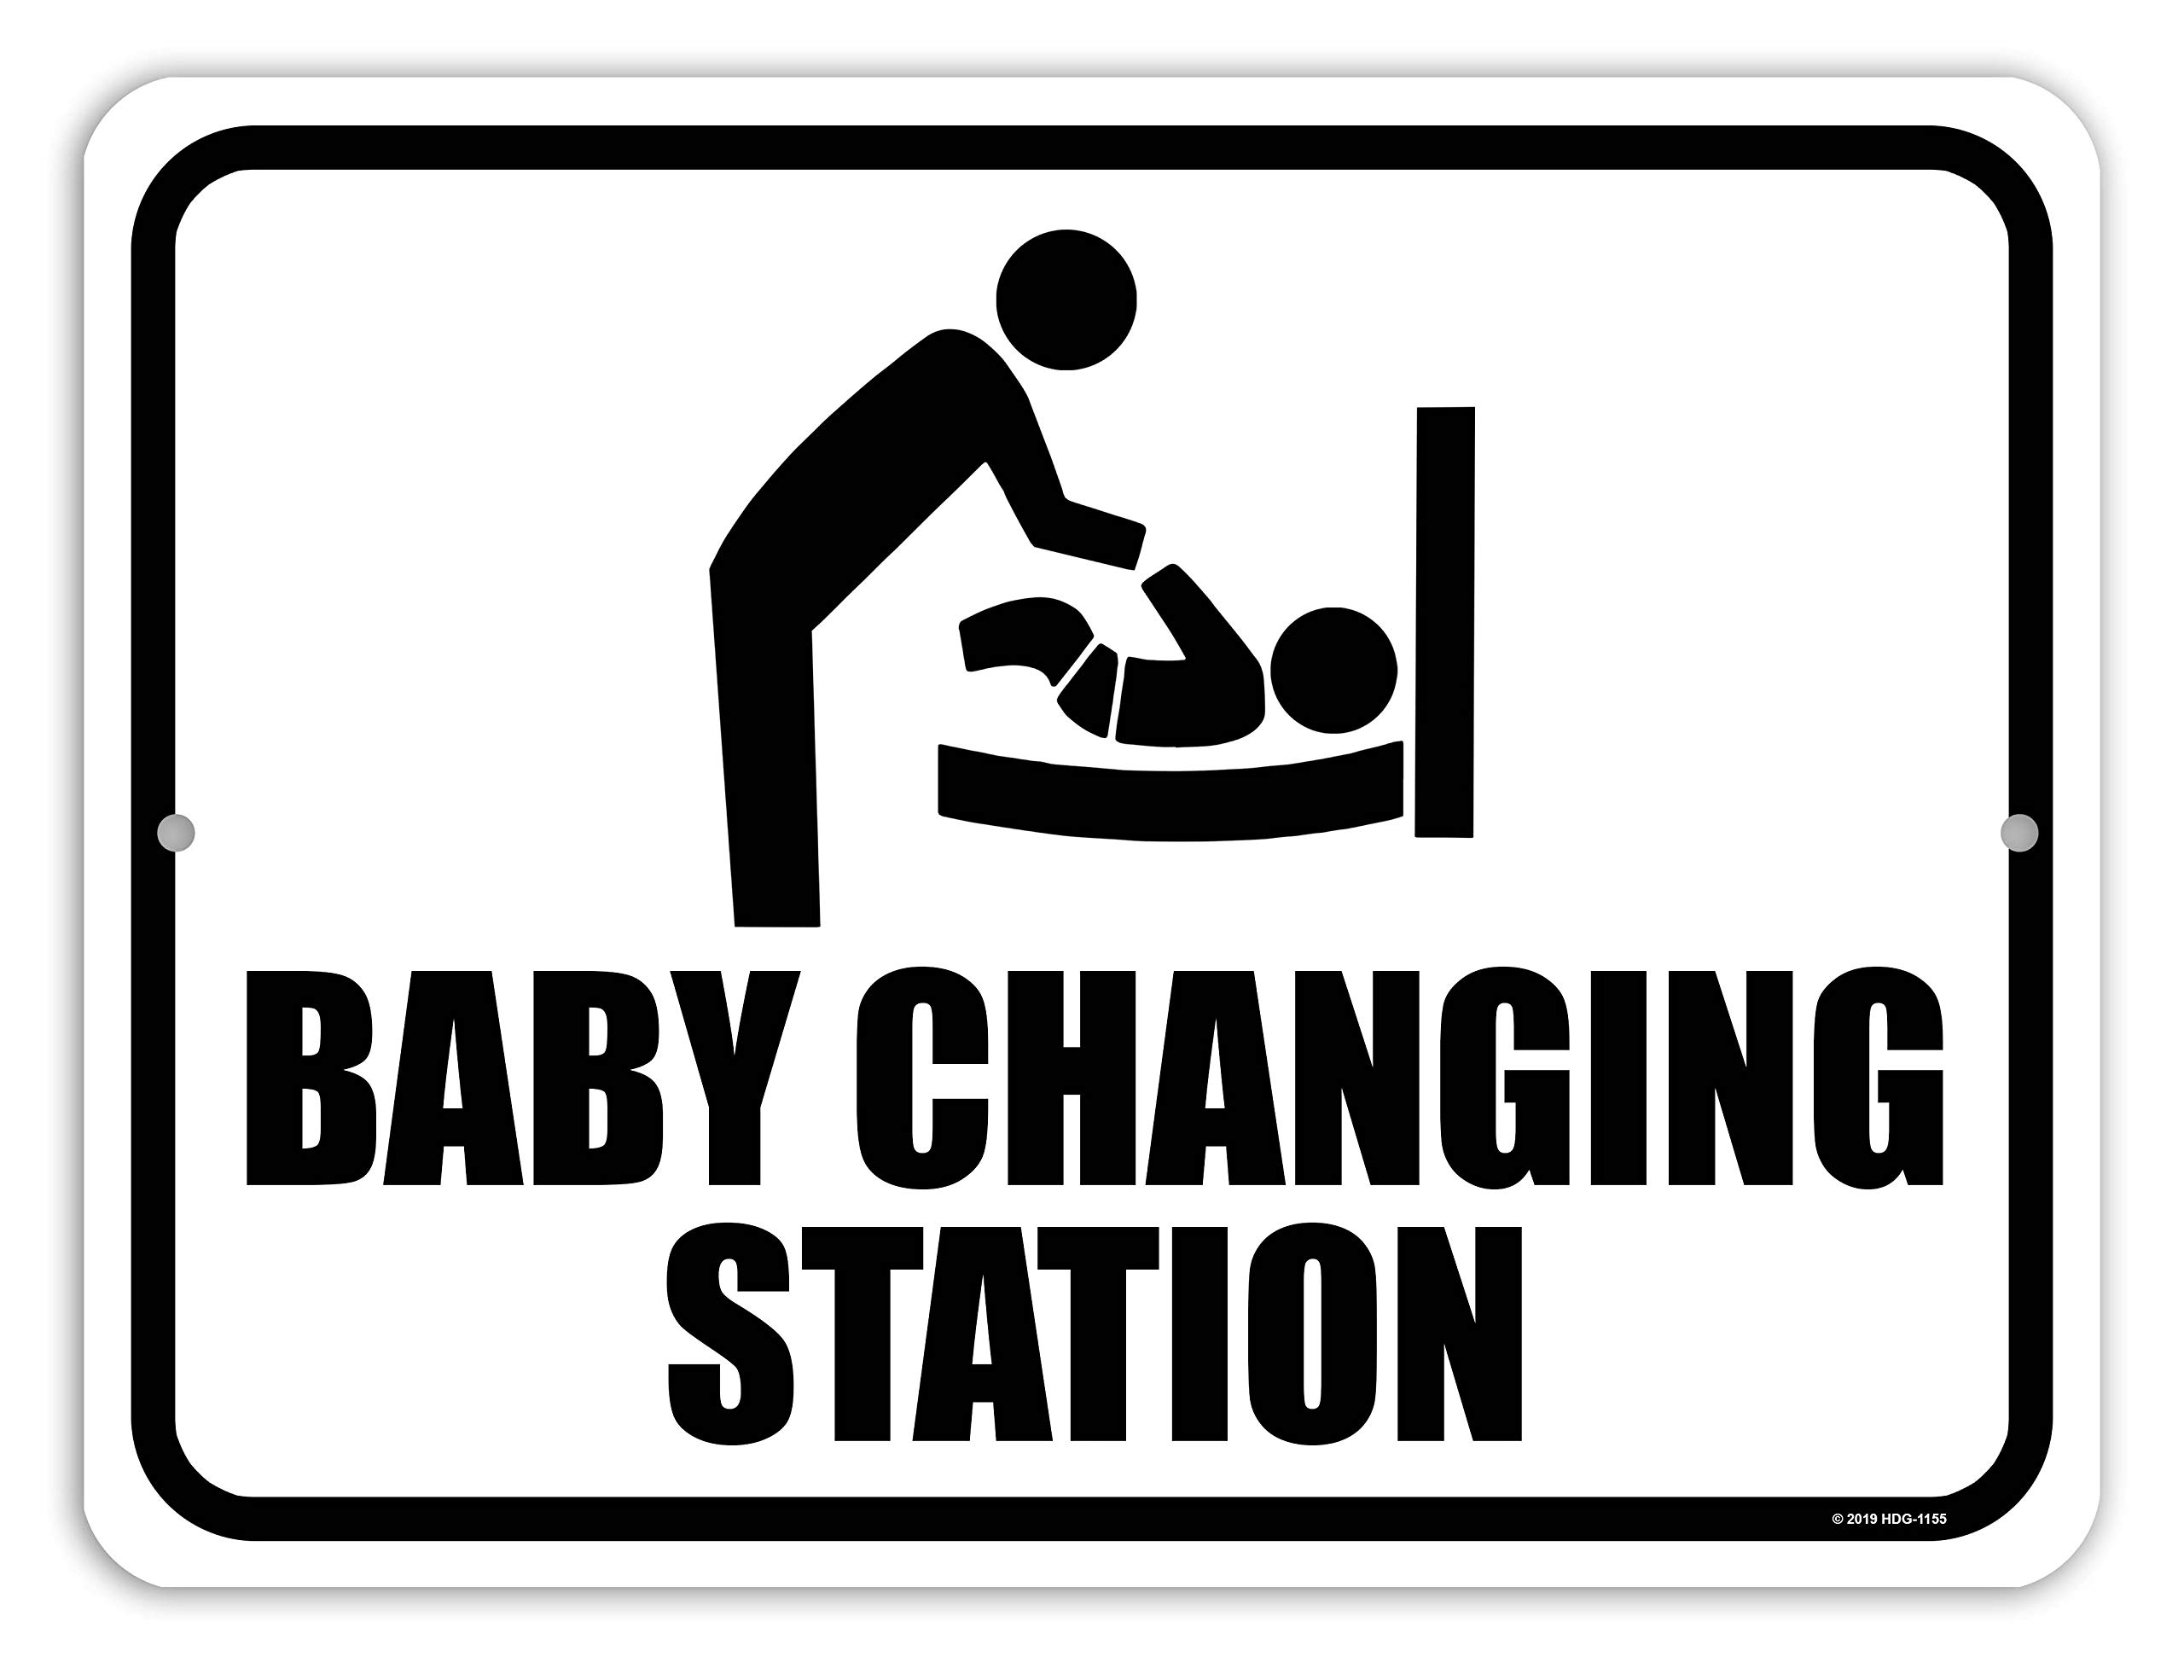 Honey Dew Gifts Restroom Sign, Baby Changing Station 9 inch by 12 inch Metal Aluminum Baby Changing Station Sign for Business, Made in USA by Honey Dew Gifts